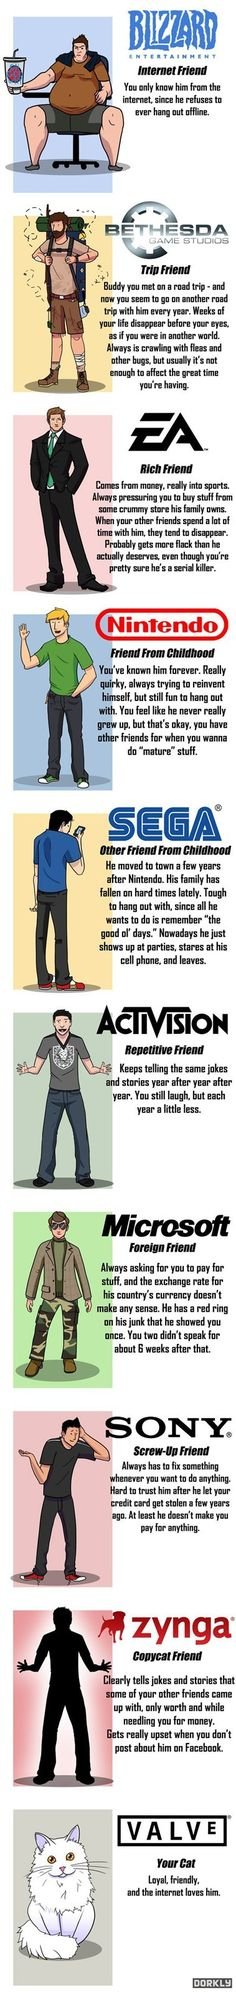 What Would Video Game Companies be Like as People?